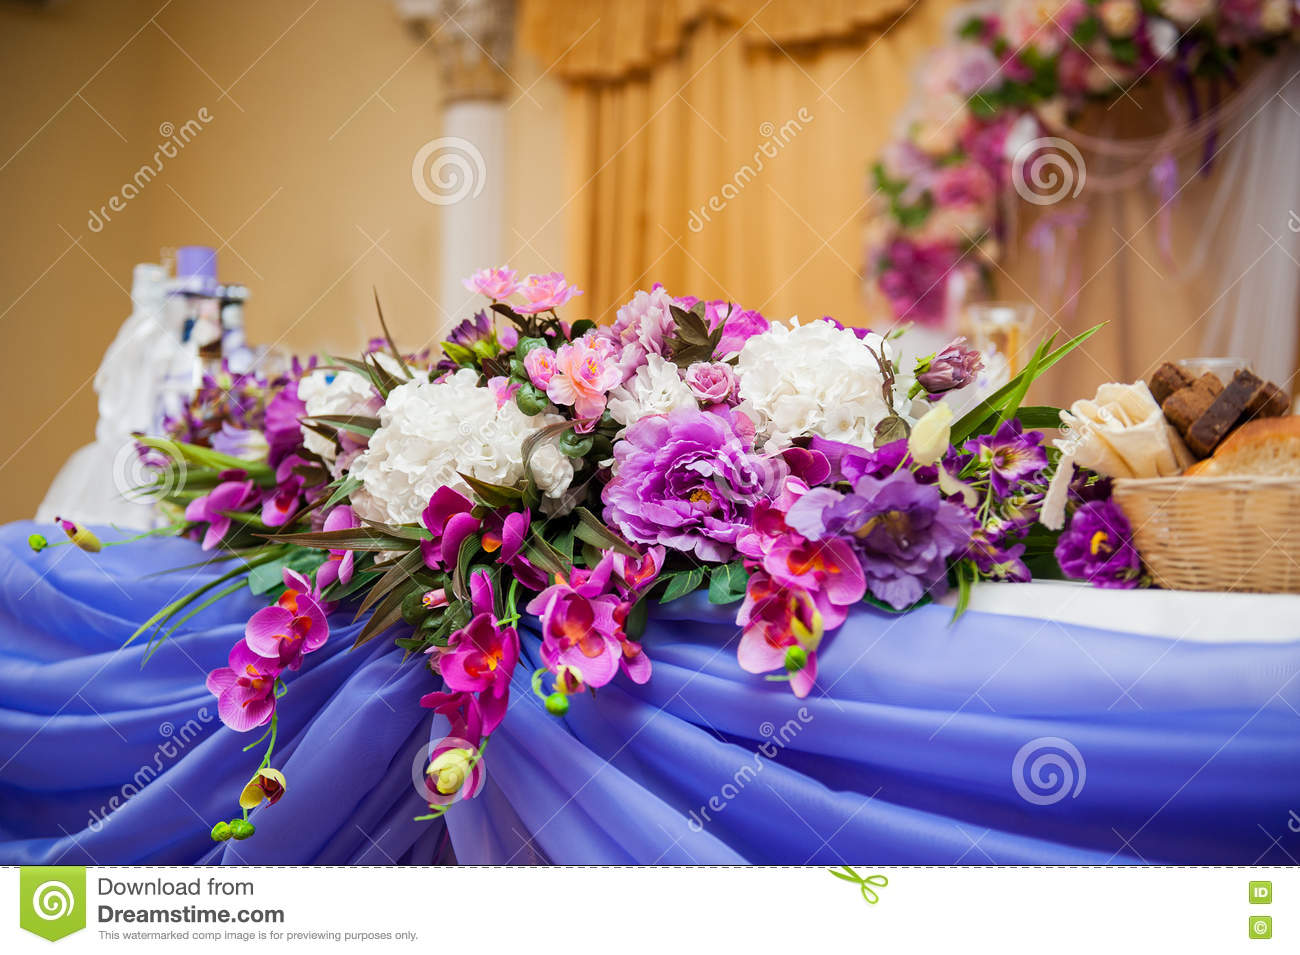 Decor Of Flowers On A Table Bride And Groom